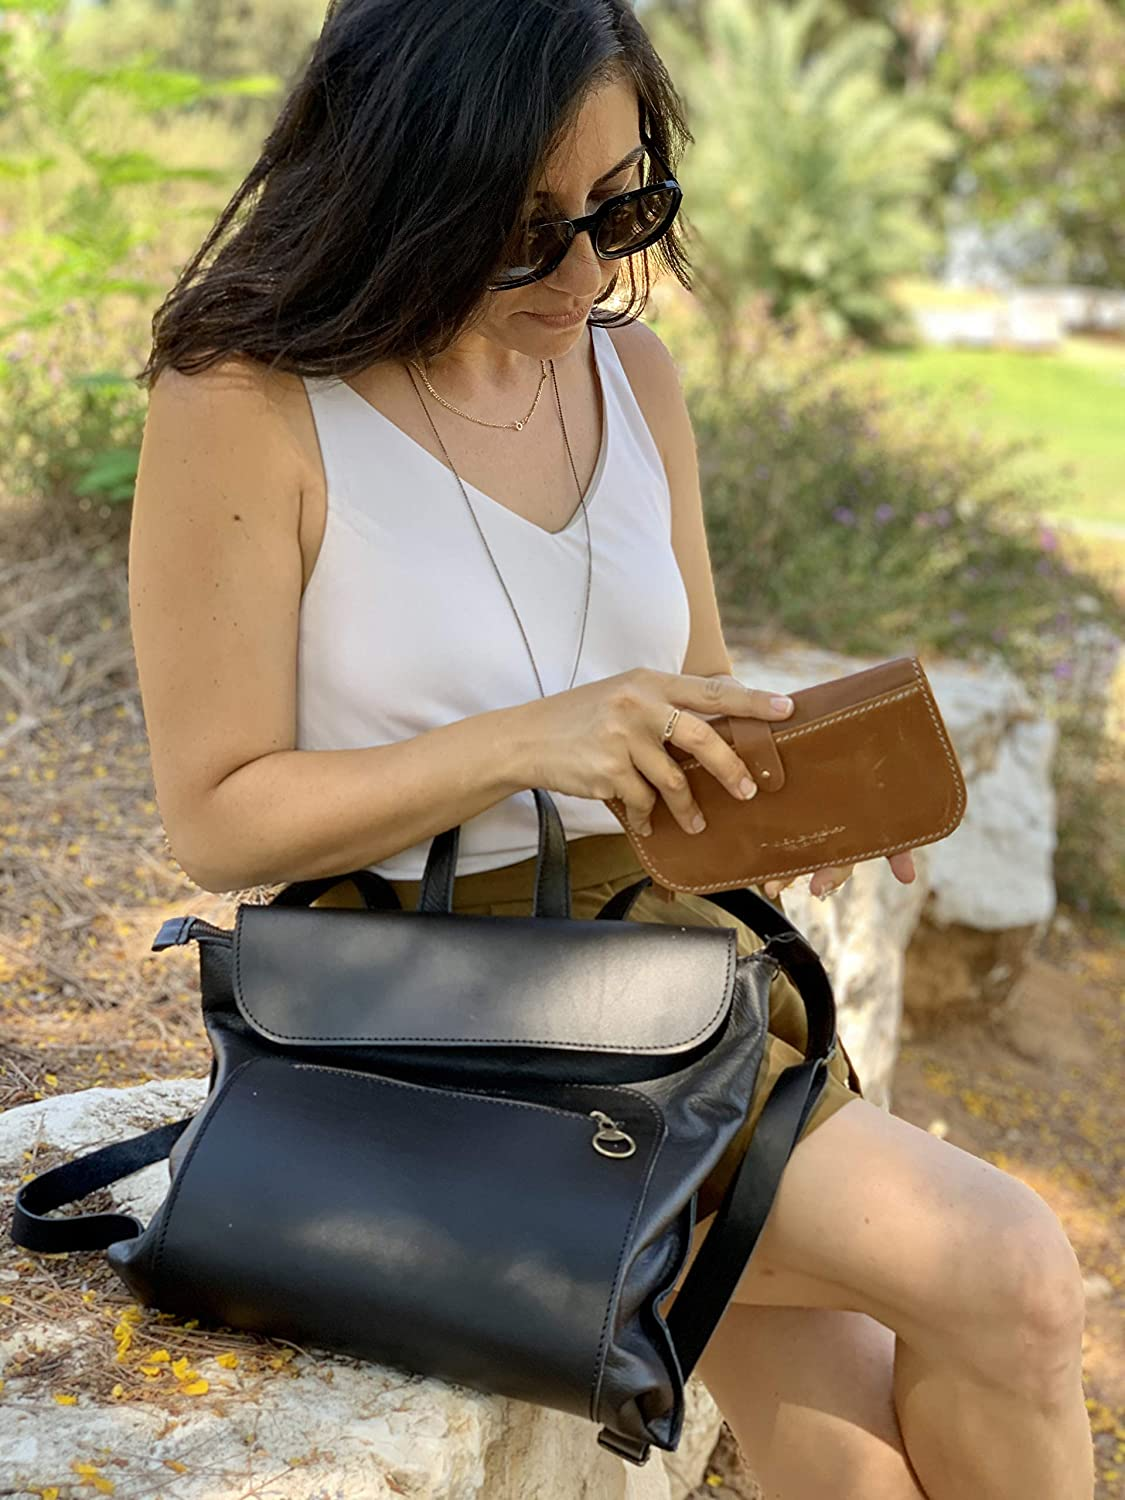 Unique Gift for her Fashion Mini backpack Shoulder Bag 3 in 1 Leather Crossbody bags for women Handmade Bags Christmas gifts for mom